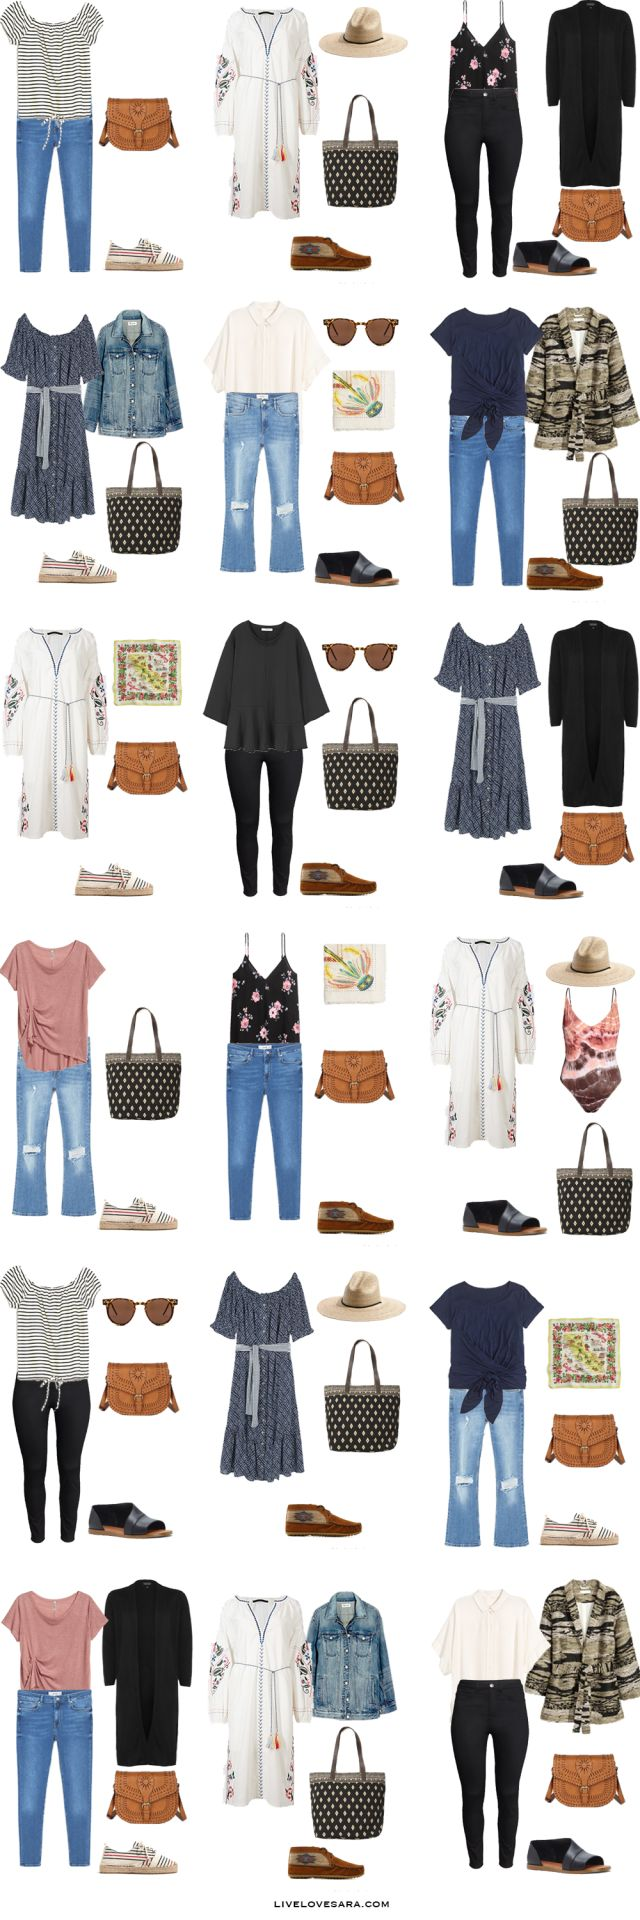 Packing List: 3 weeks in Italy+Paris.What to Wear  - Boho Style - livelovesara